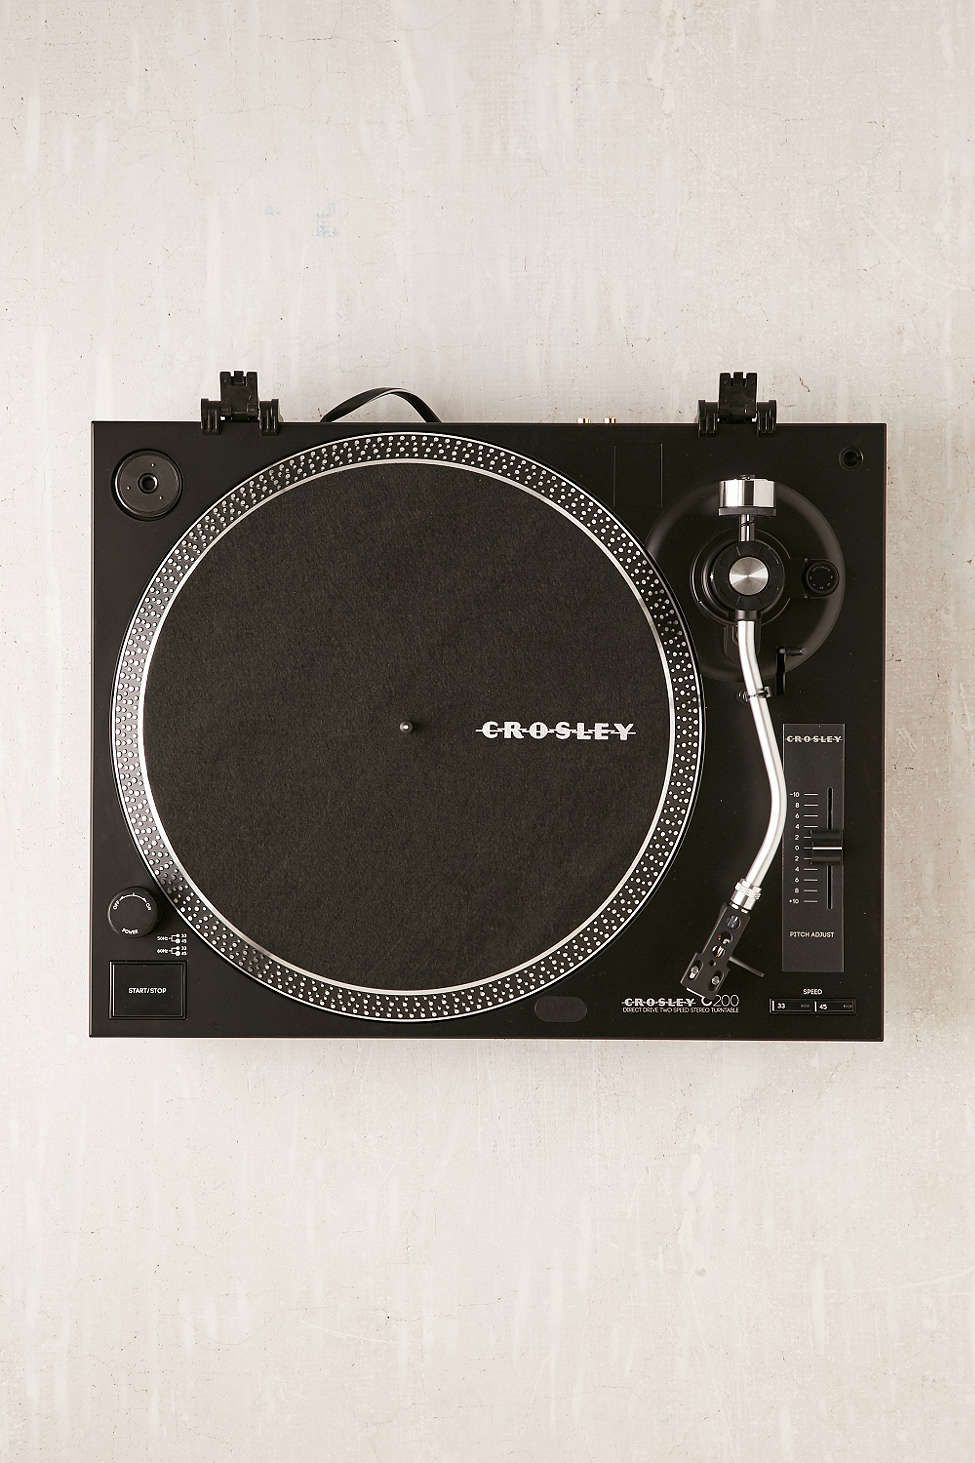 Crosley C200 Vinyl Record Player Vinyl Record Player Record Player Urban Outfitters Record Player